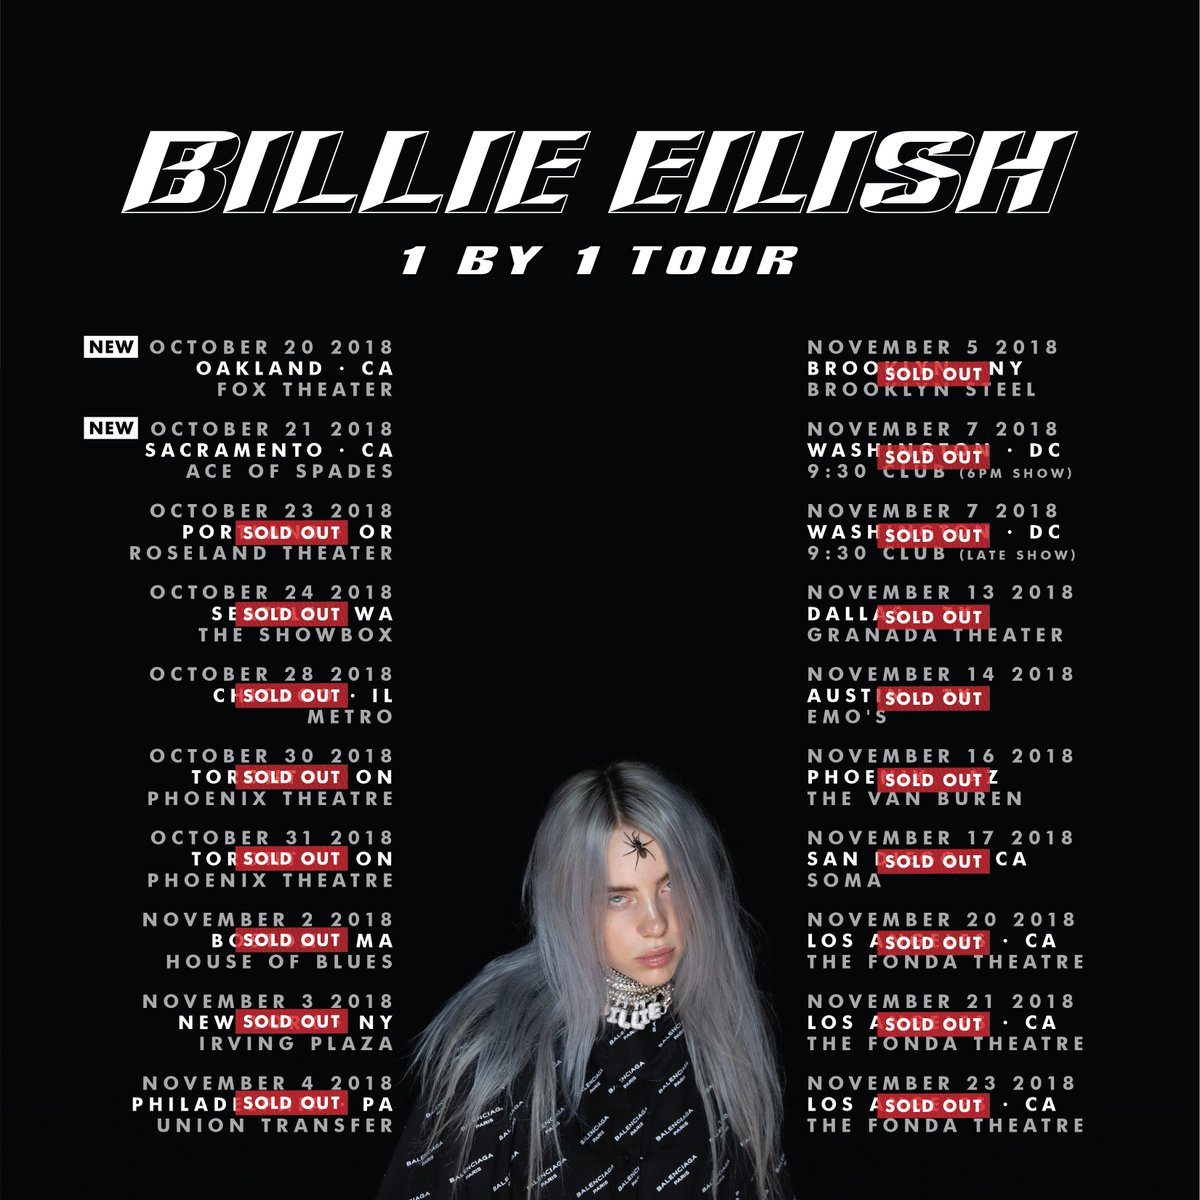 NEW '1 BY 1' TOUR DATES IN CALIFORNIA ADDED sign up for early access smarturl.it/billieeilishem…